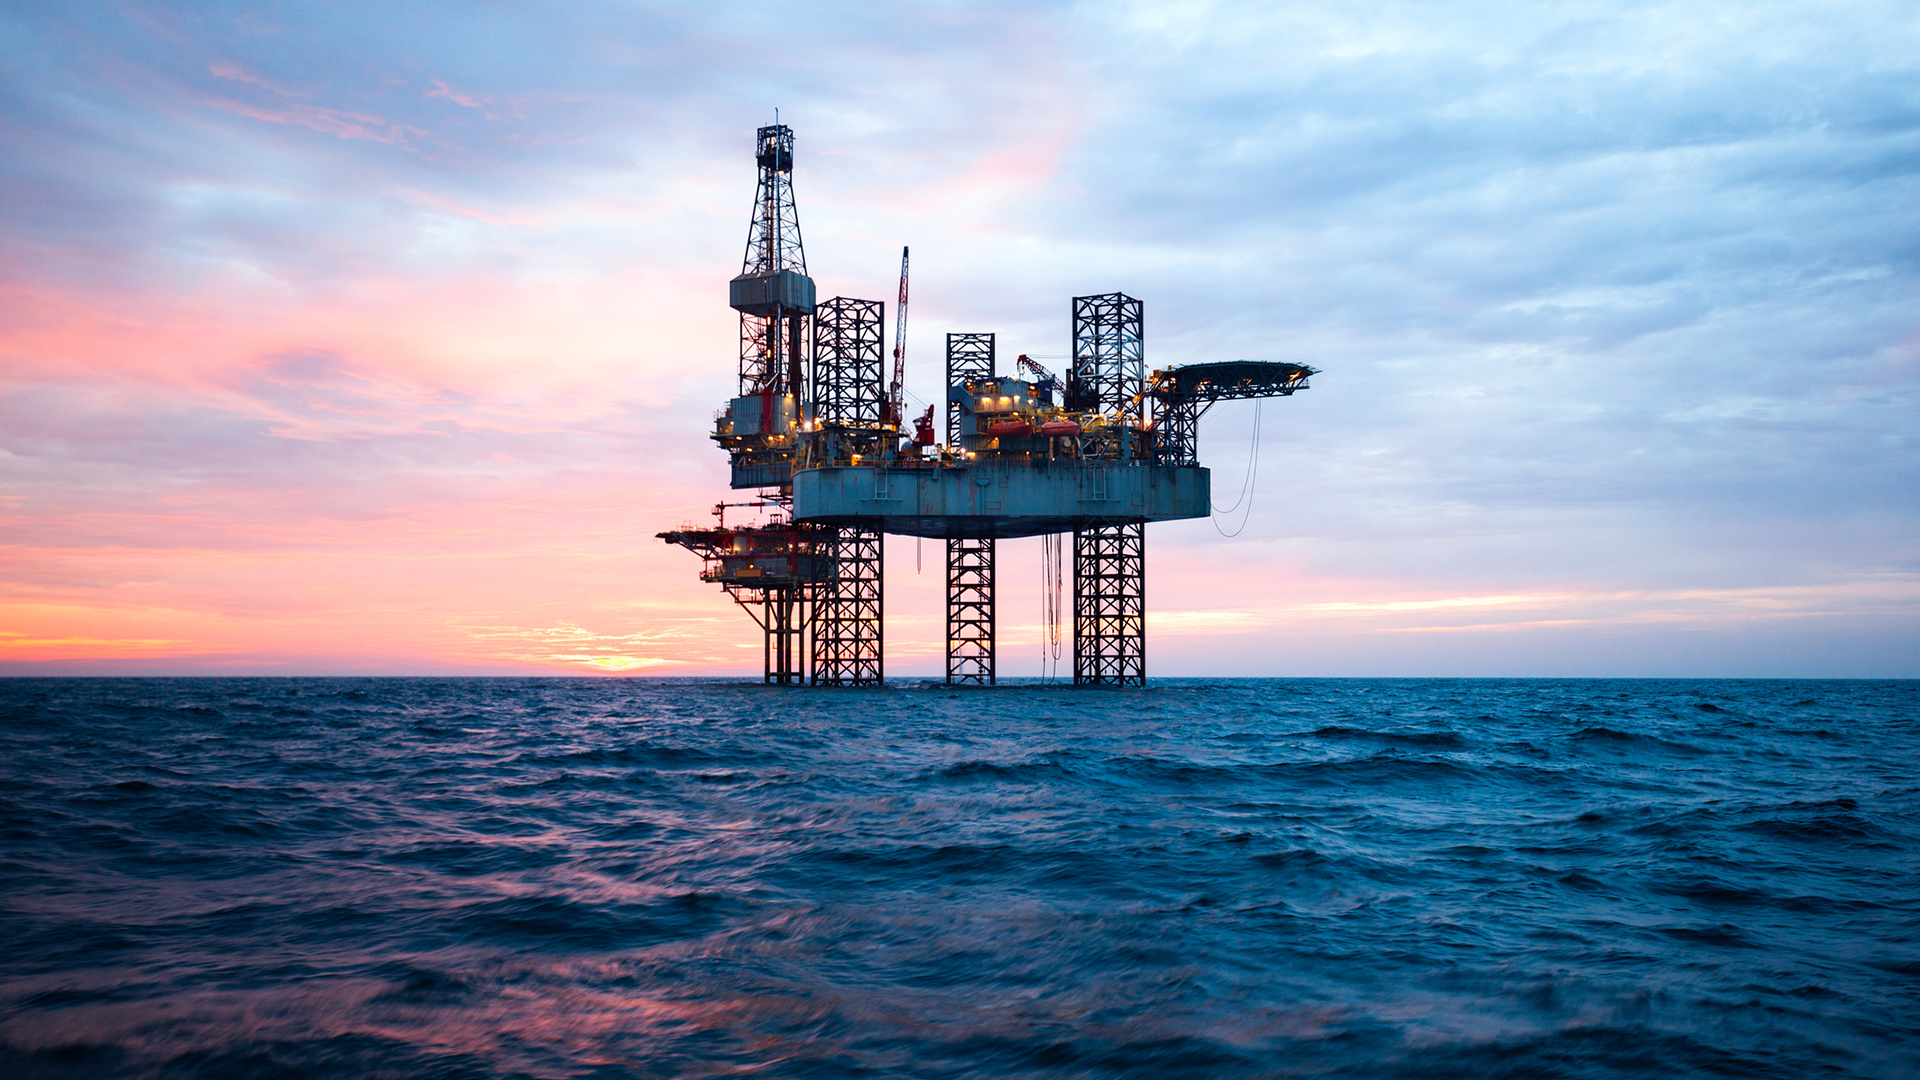 Offshore Jack Up Rig 1920x1080